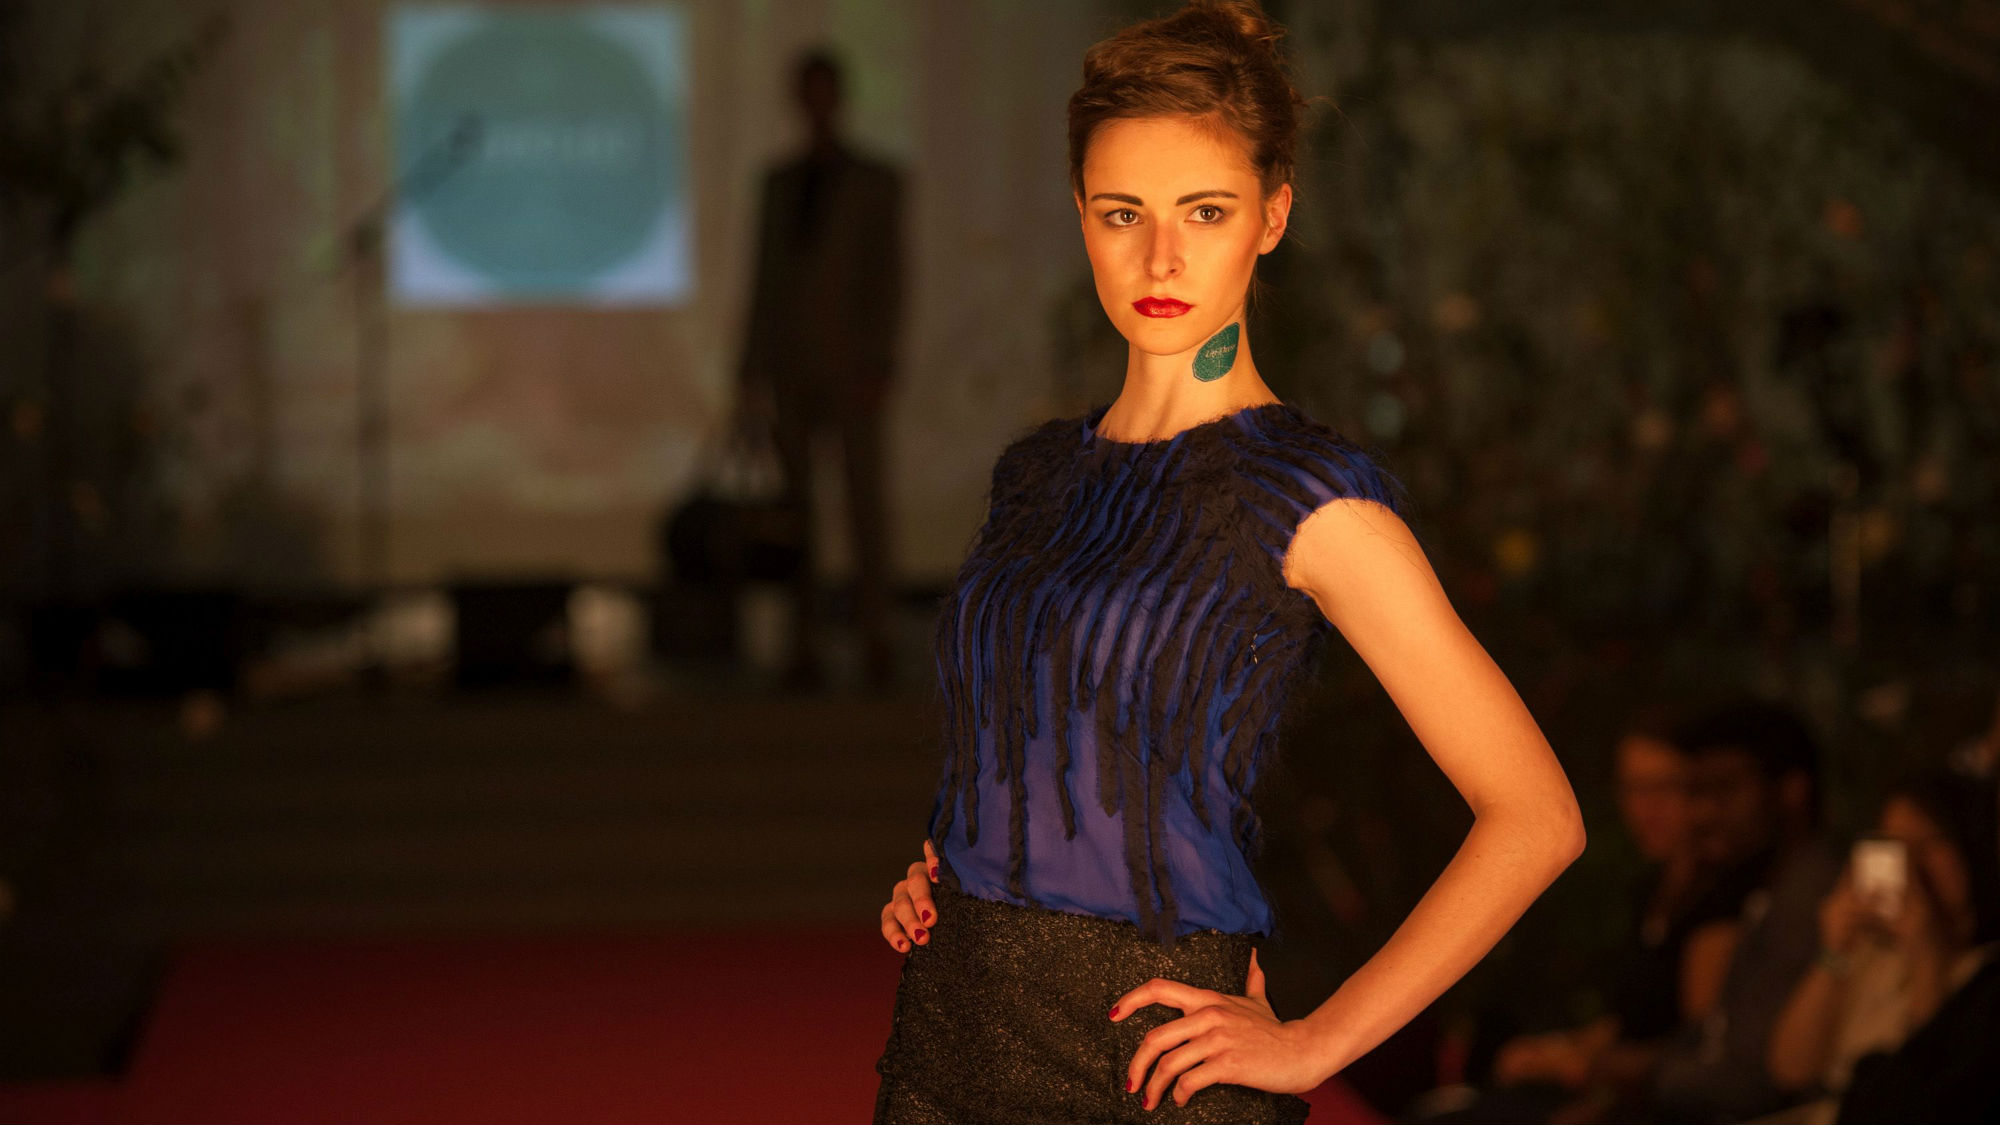 HSG students show sustainable fashion on the catwalk